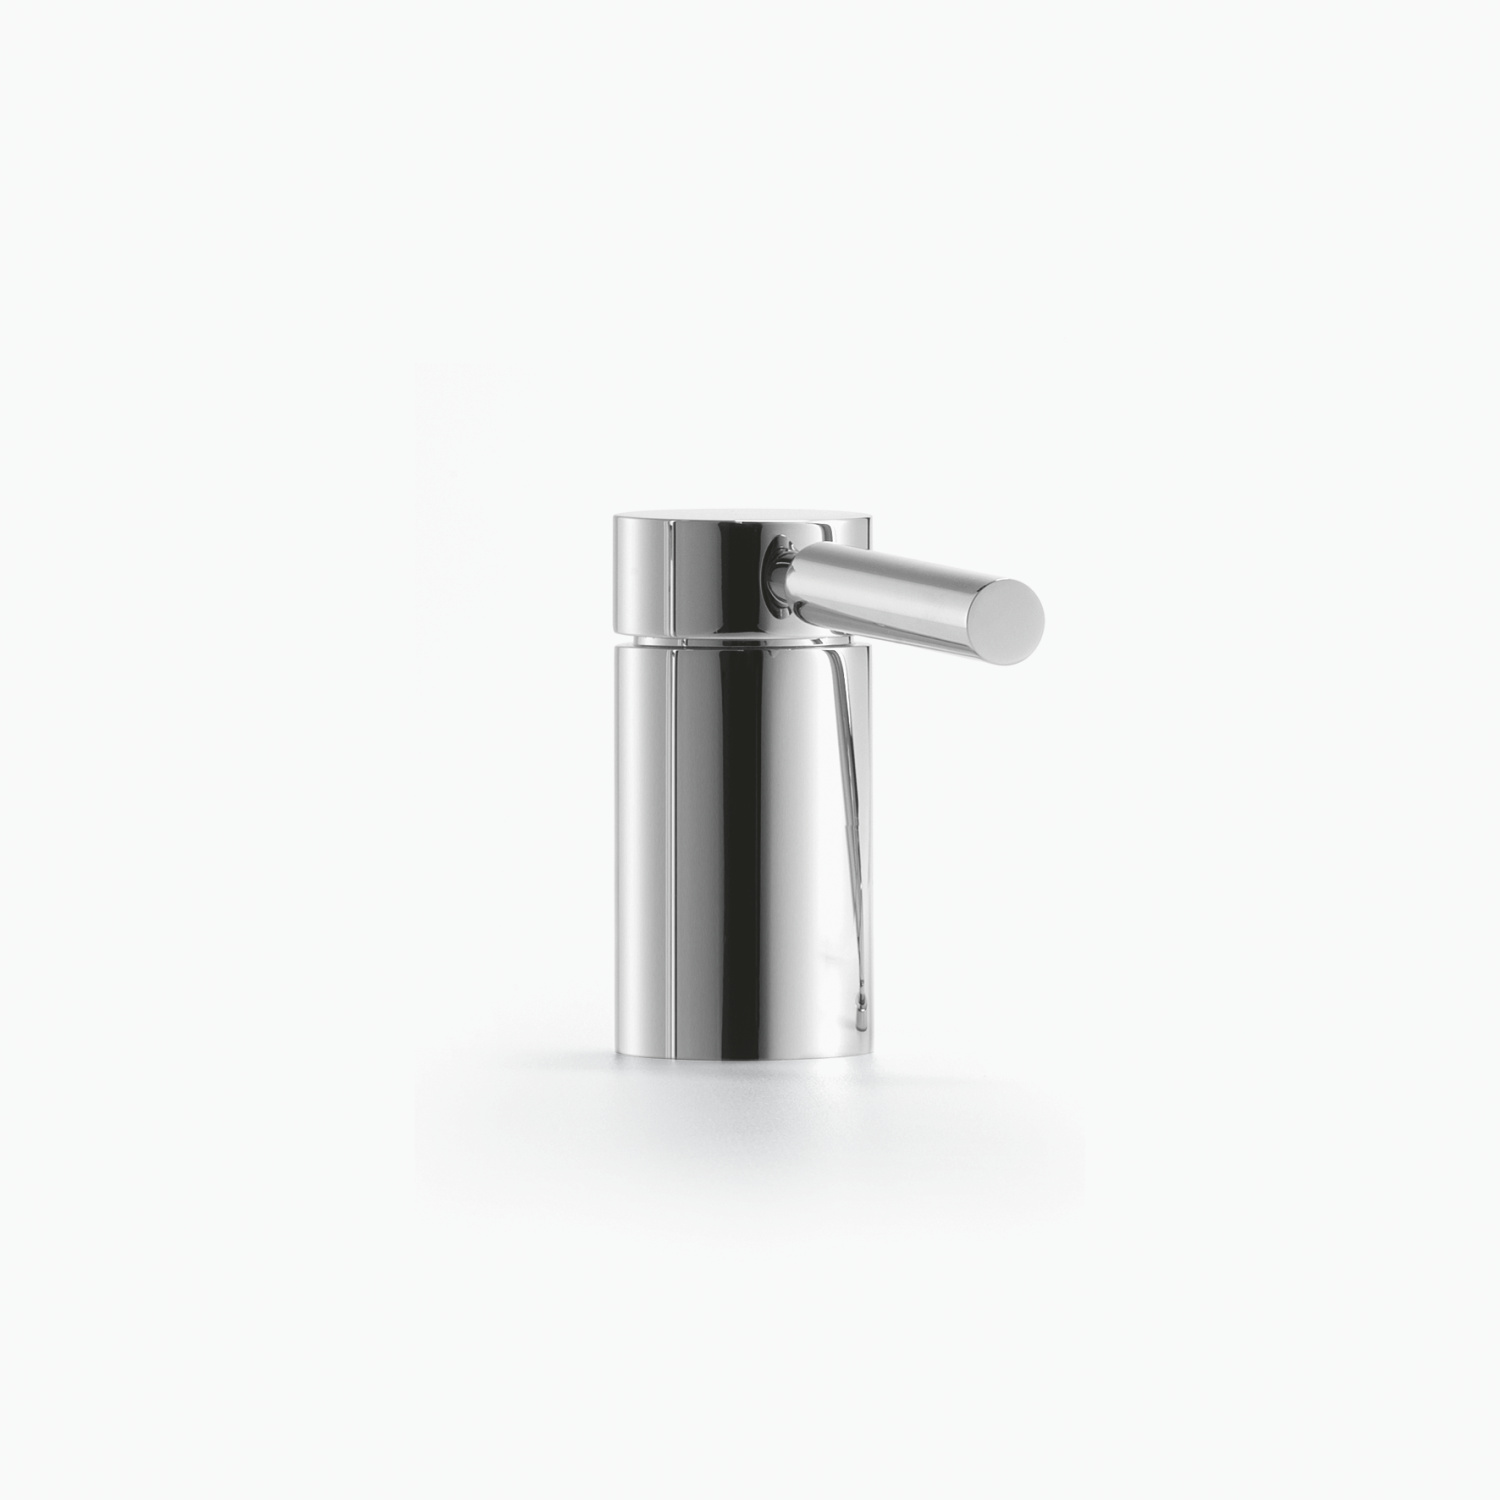 Single-lever bath mixer for bath rim or tile edge installation - platinum matt - 29 200 885-06